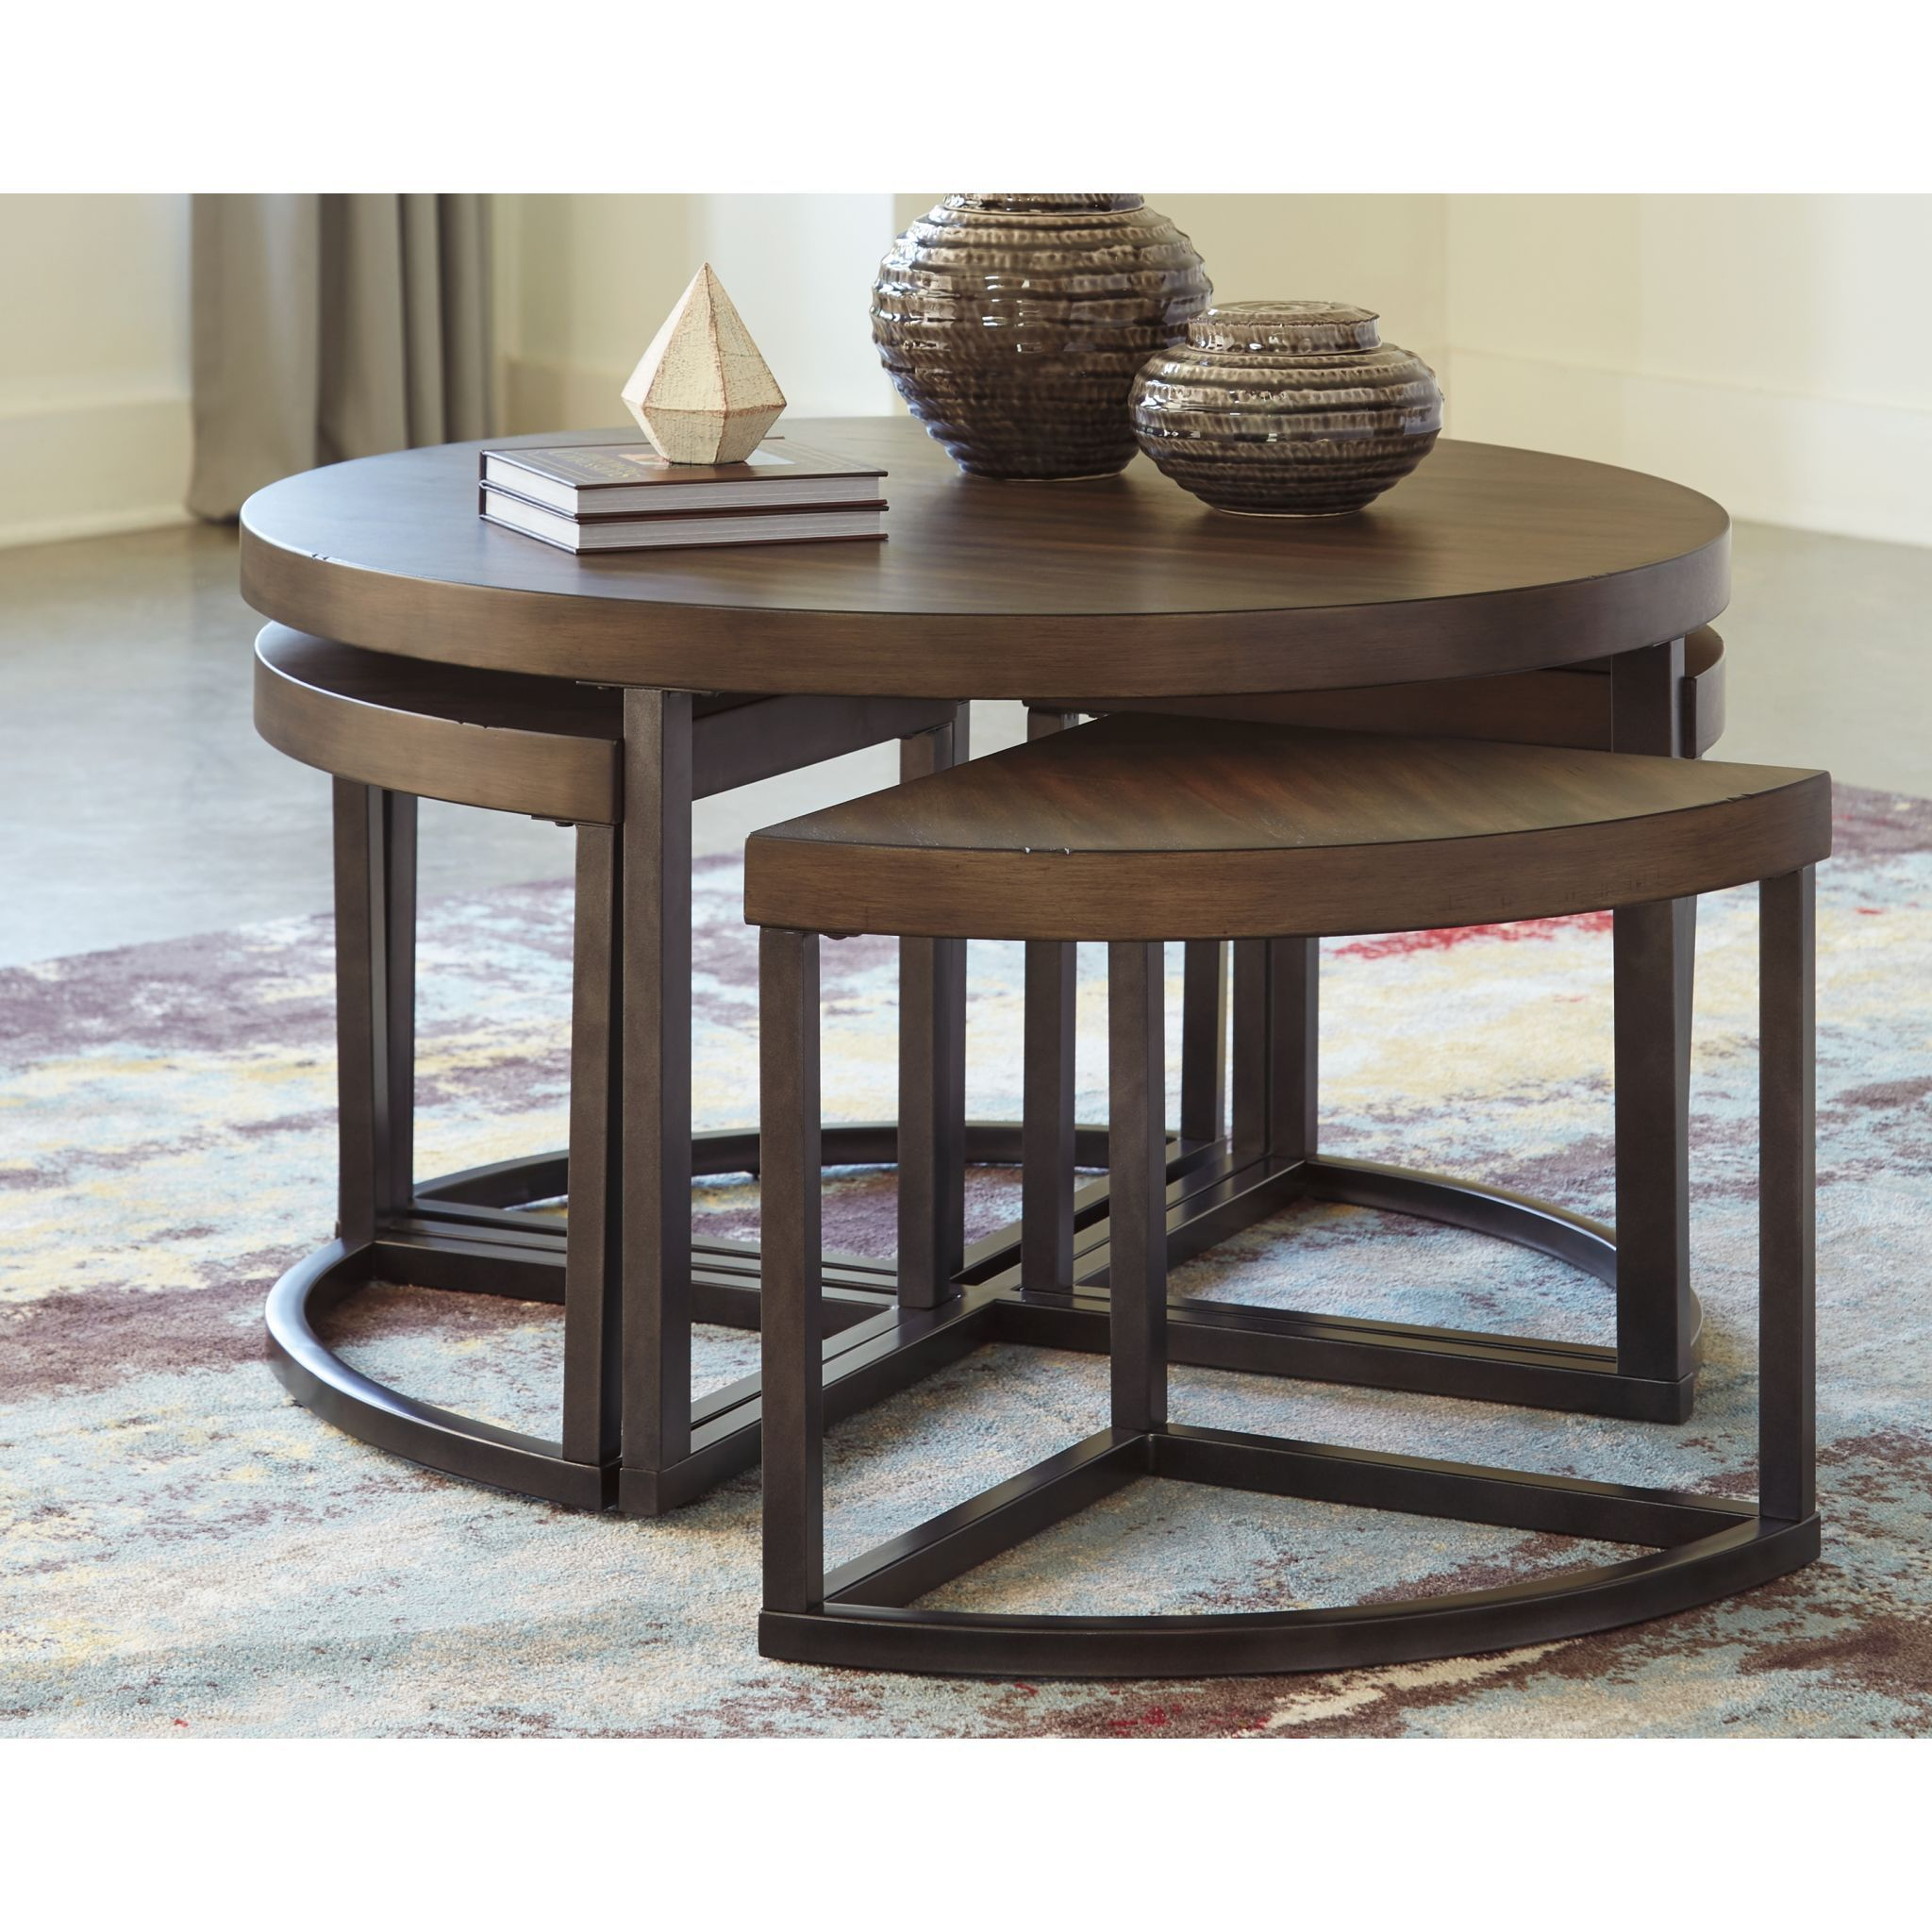 Johurst Cocktail Table With 4 Stools In 2020 Coffee Table And Stool Set Coffee Table Round Wooden Coffee Table [ 2048 x 2048 Pixel ]